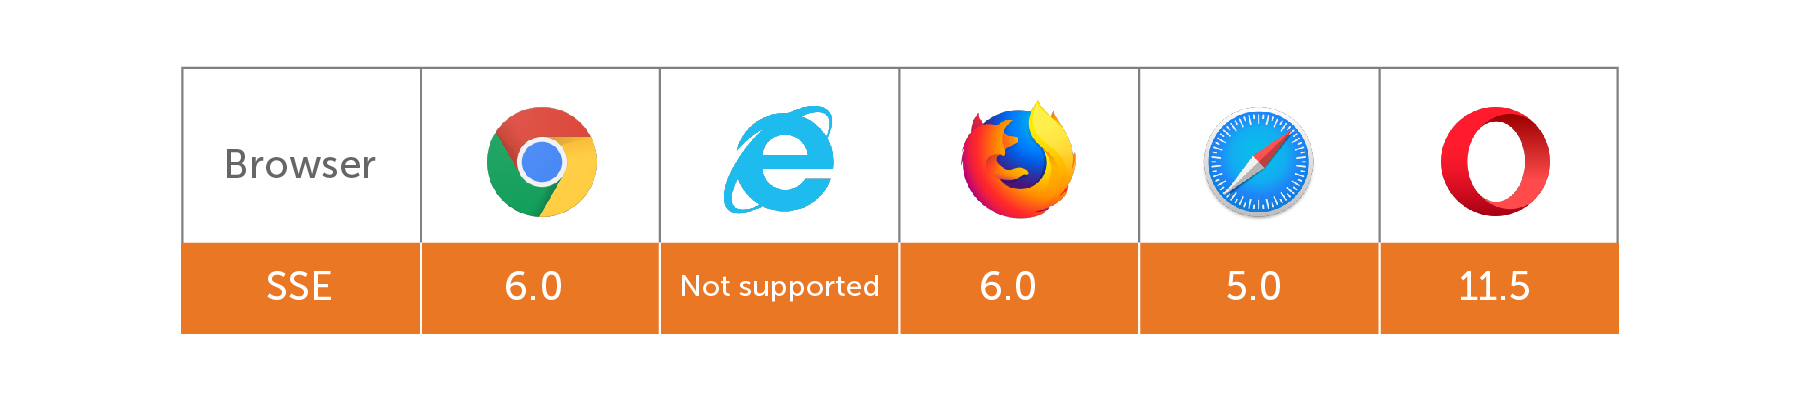 Browsers that support SSE as of June 2019.